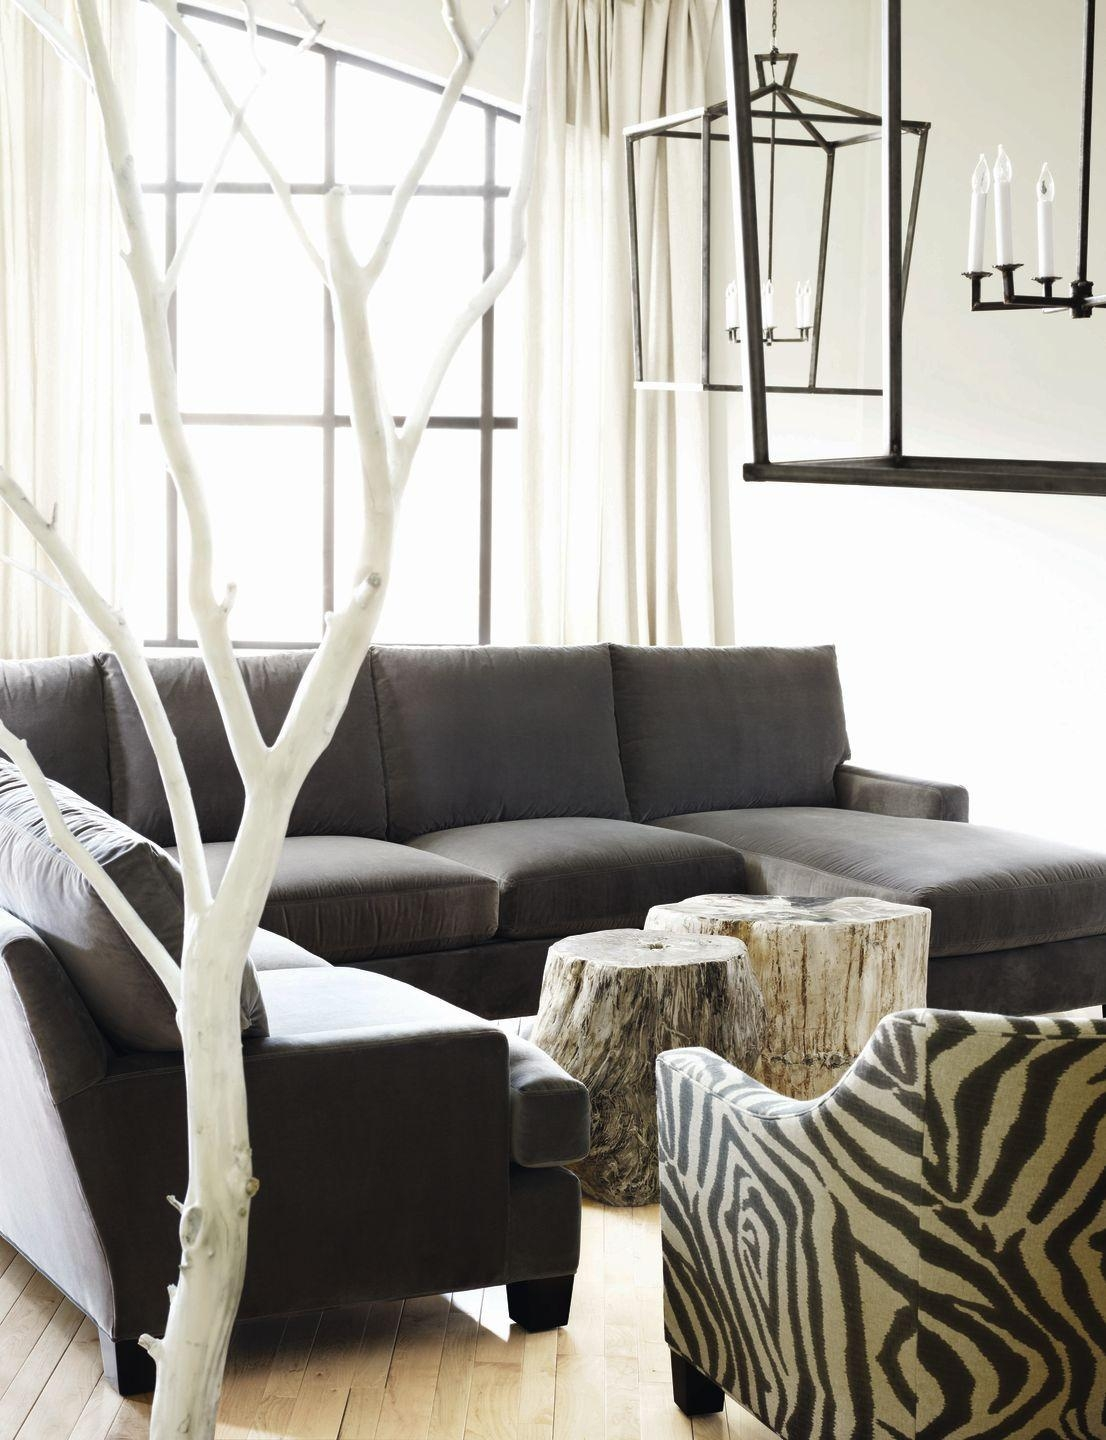 Love Lee: Save 20% On Lee Industries In October | James Craig With Lee Industries Sectional (View 13 of 20)